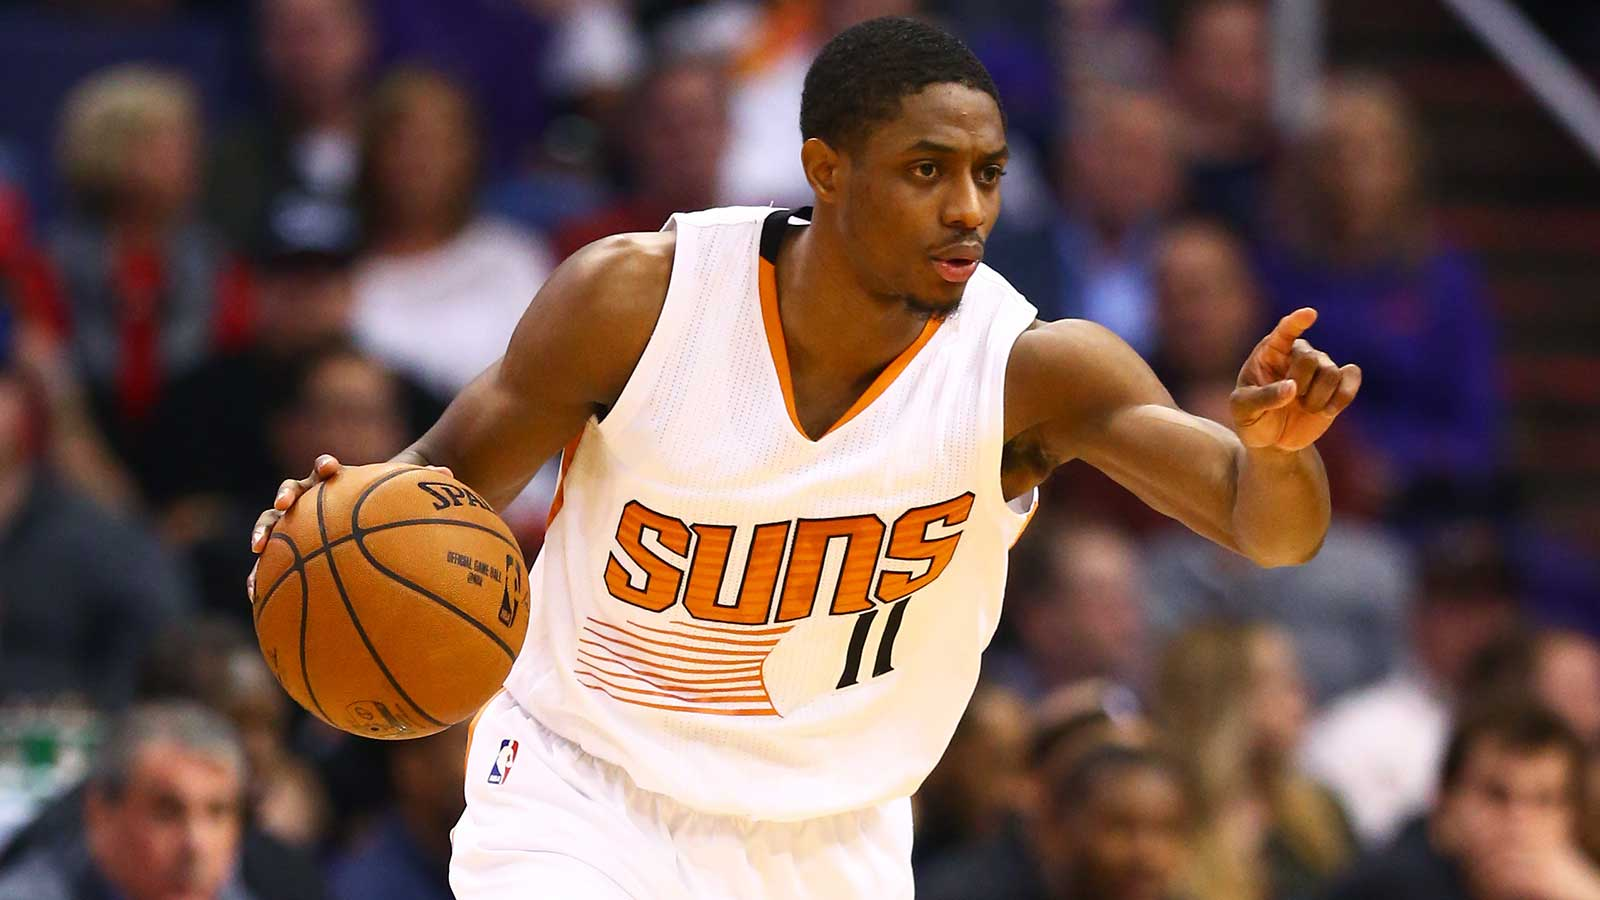 Suns' Brandon Knight tears ACL, expected to miss all of 2017-18 season